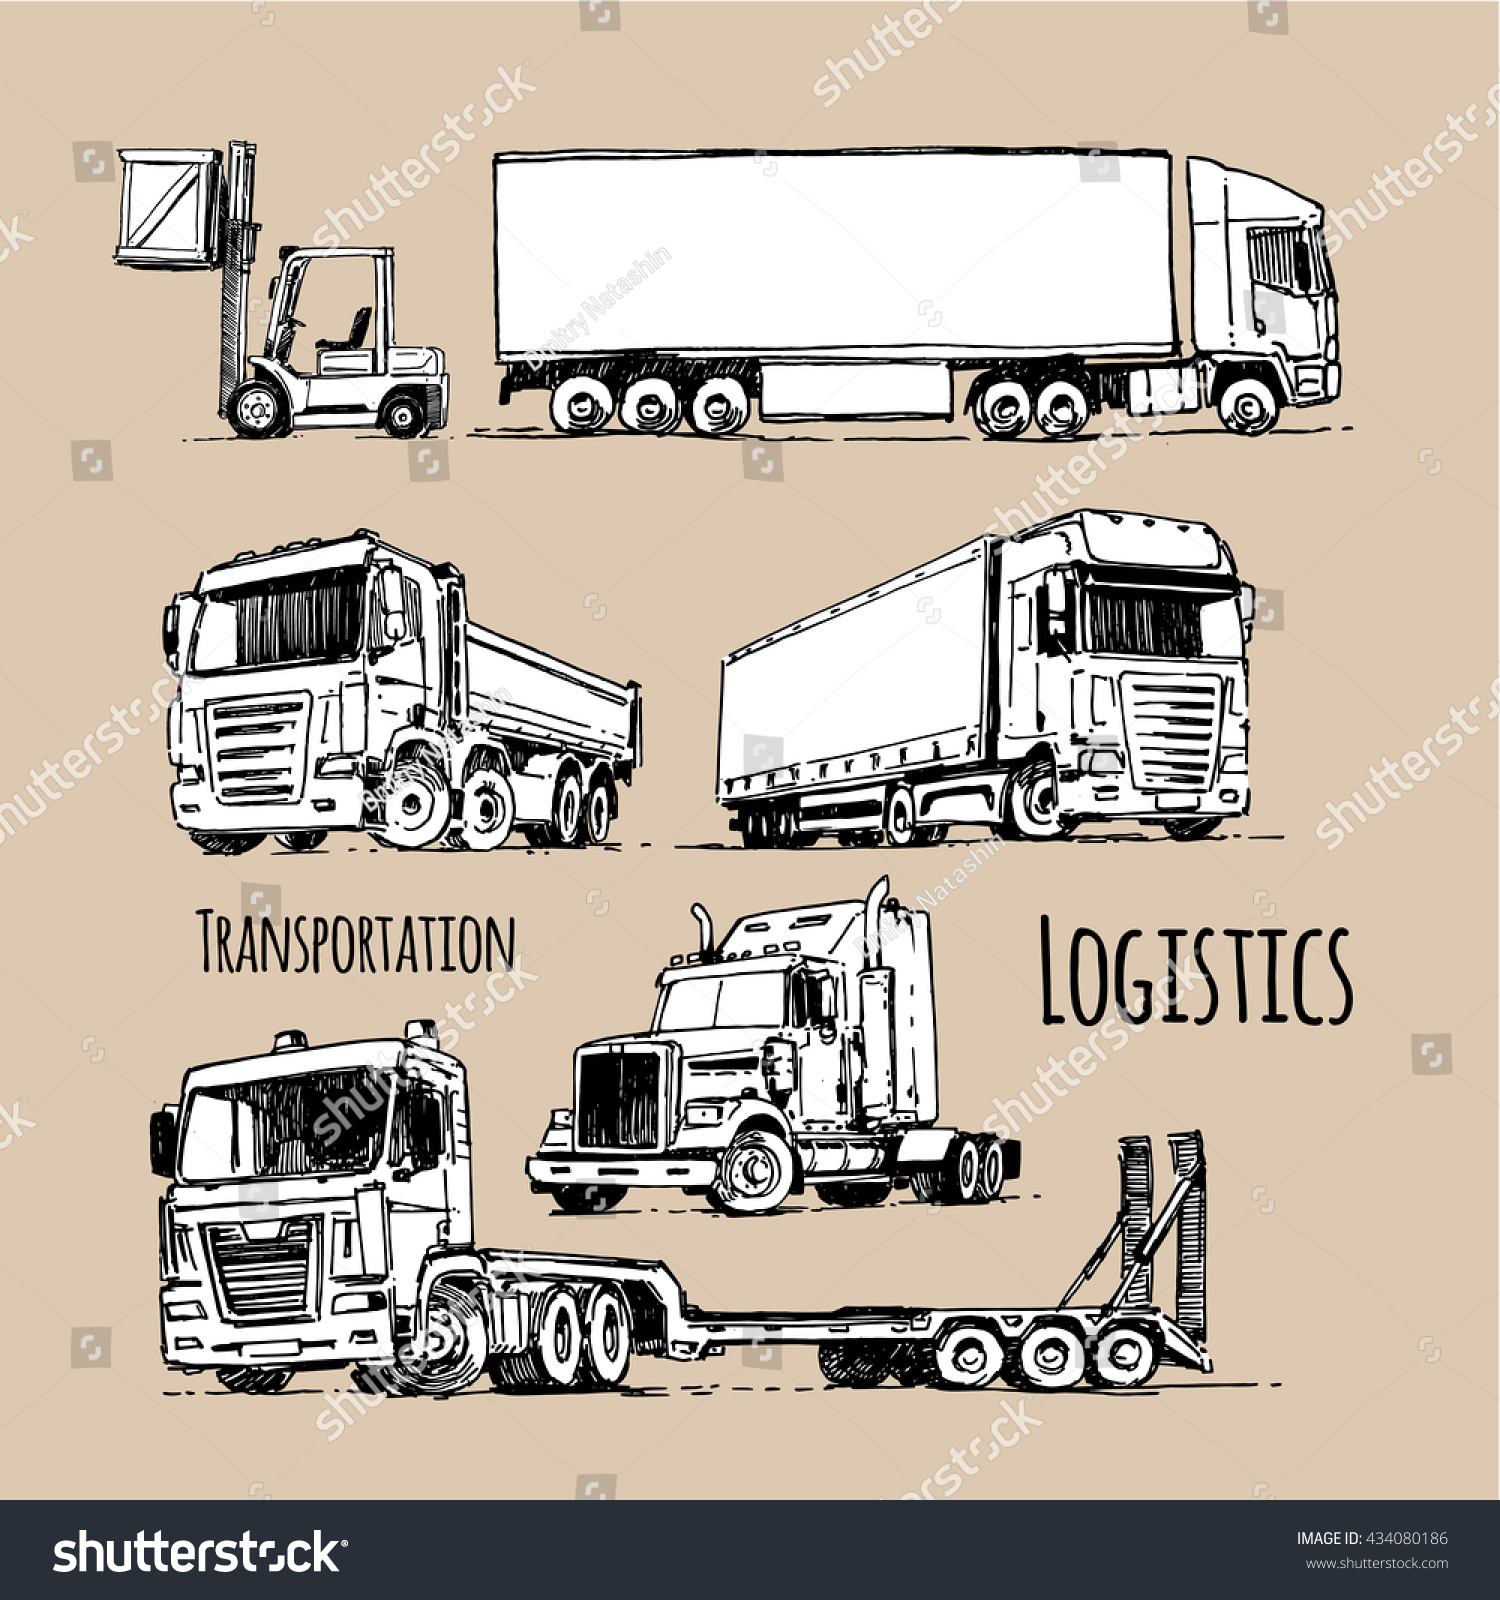 stock vector cargo truck hand drawn illustration sketch logistics and delivery 434080186 cargo truck hand drawn illustration sketch stock vector (royalty